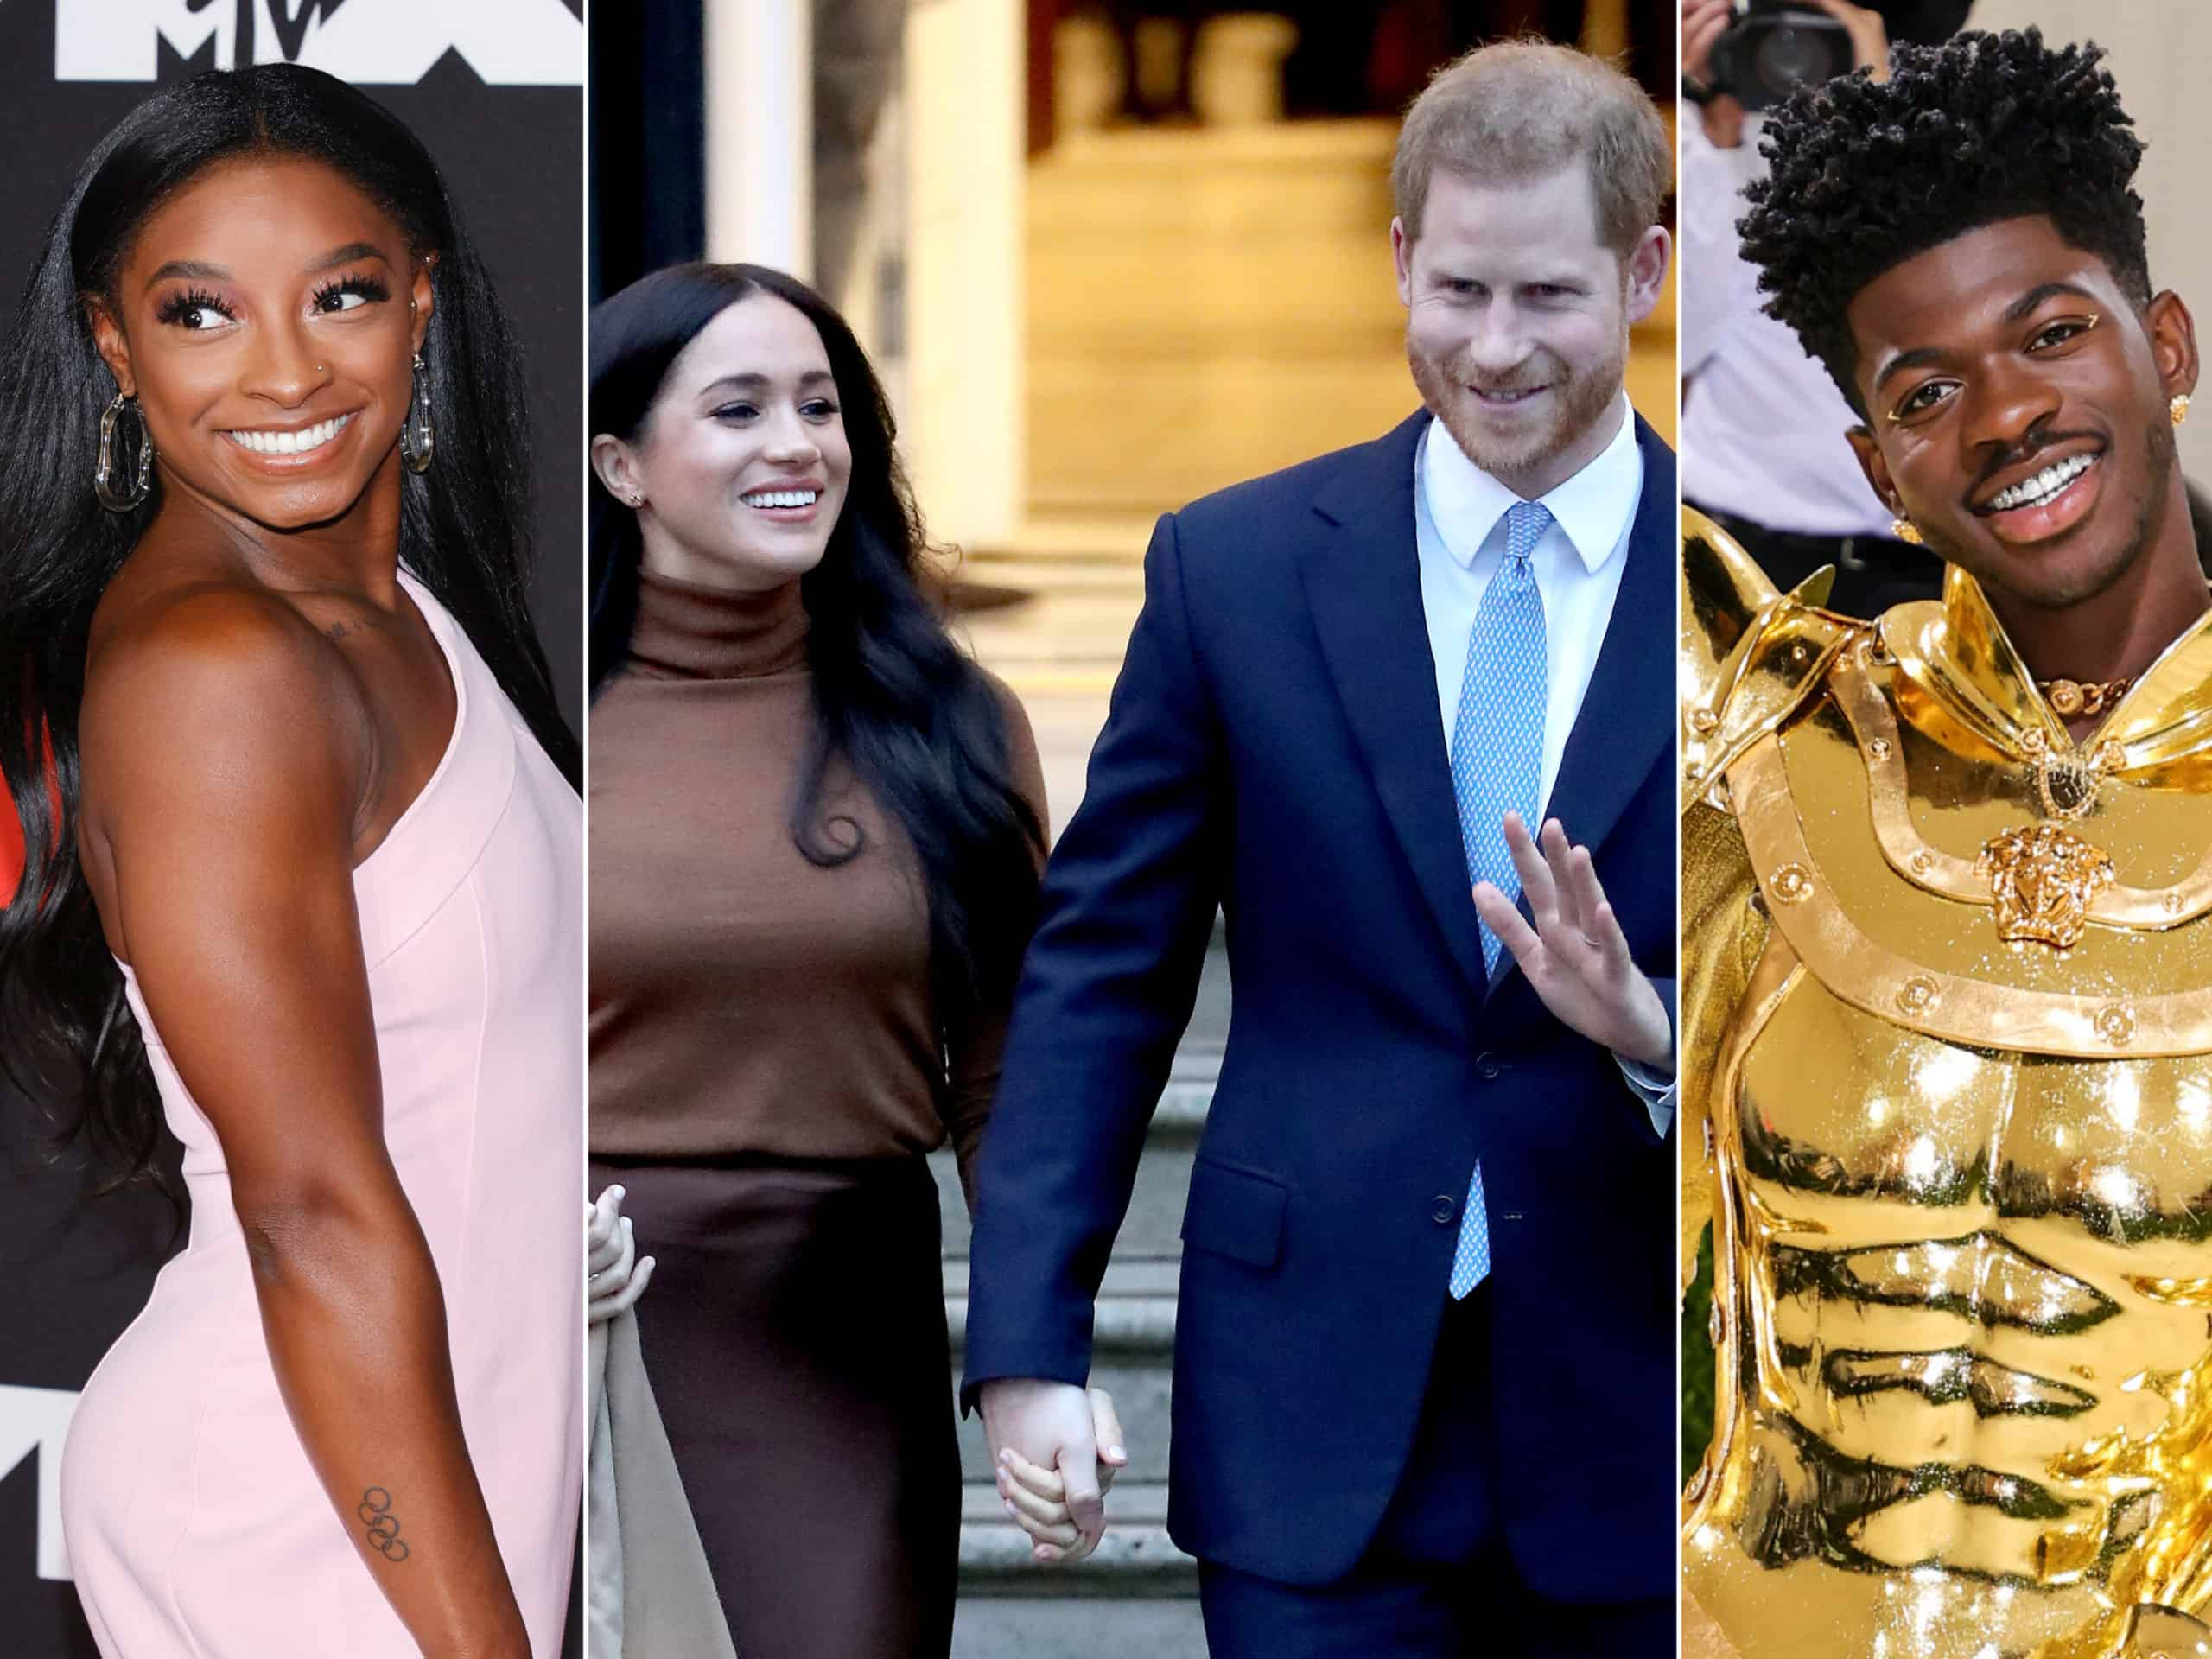 Simone Biles, Princes Harry, Meghan Markle, Lil Nas X and more have made Time Magazine's annual list of most influential people.